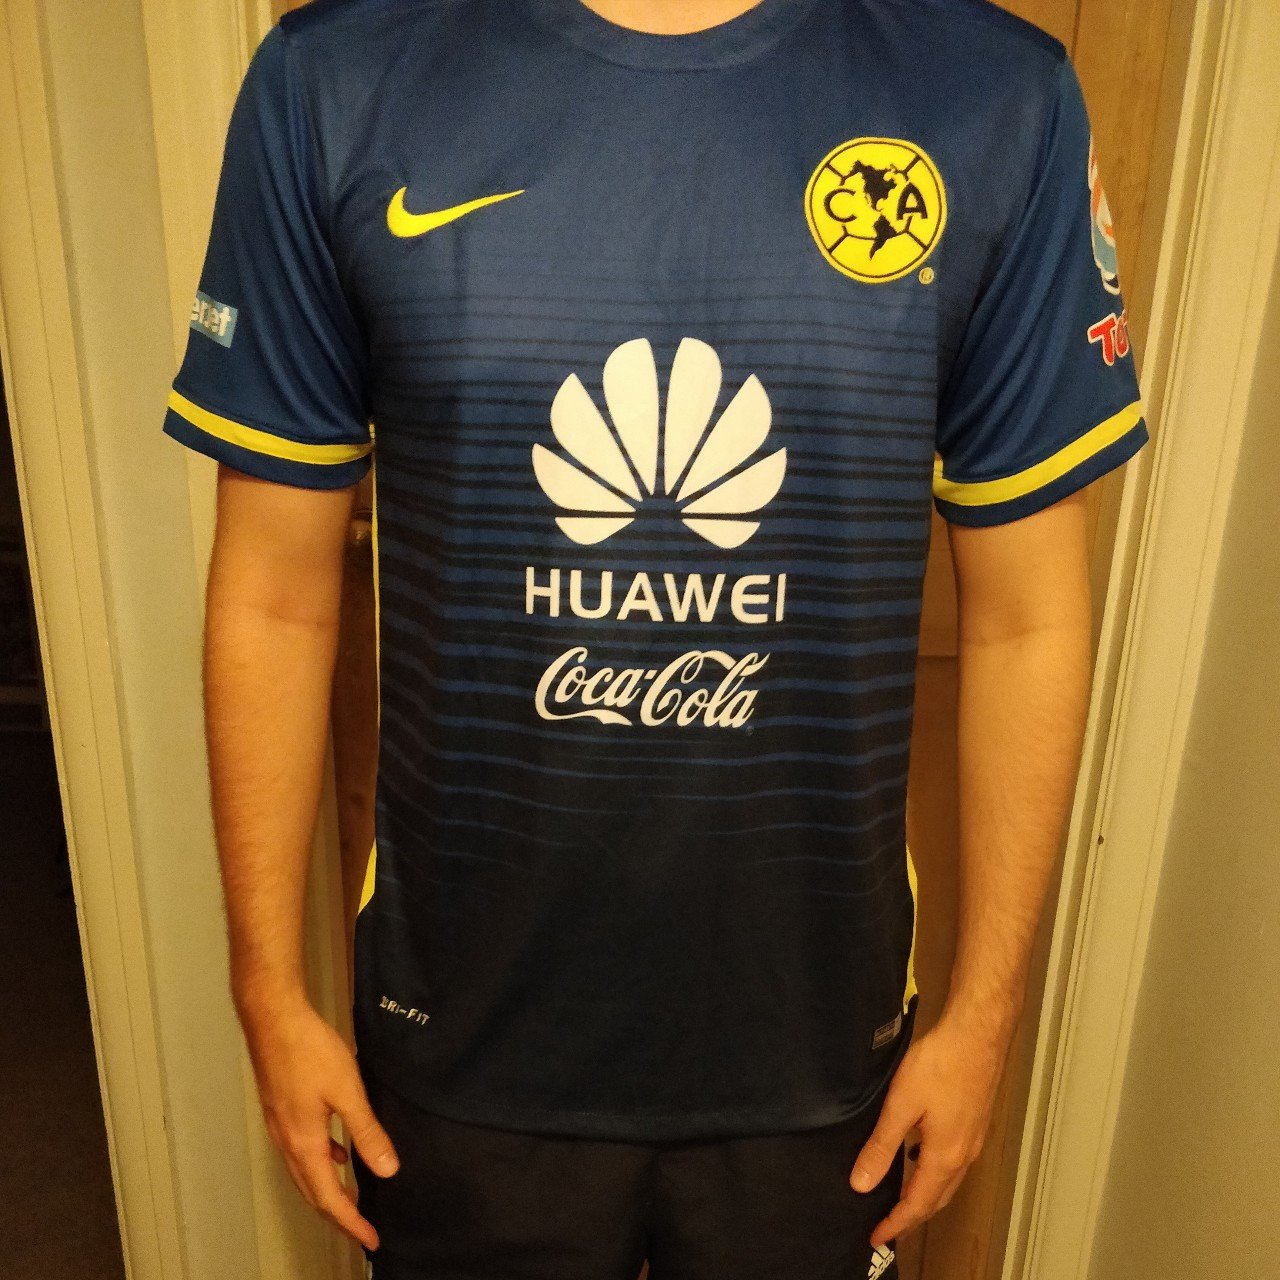 f03a47212 Club America 2015 16 away football shirt Size Medium a great - Depop